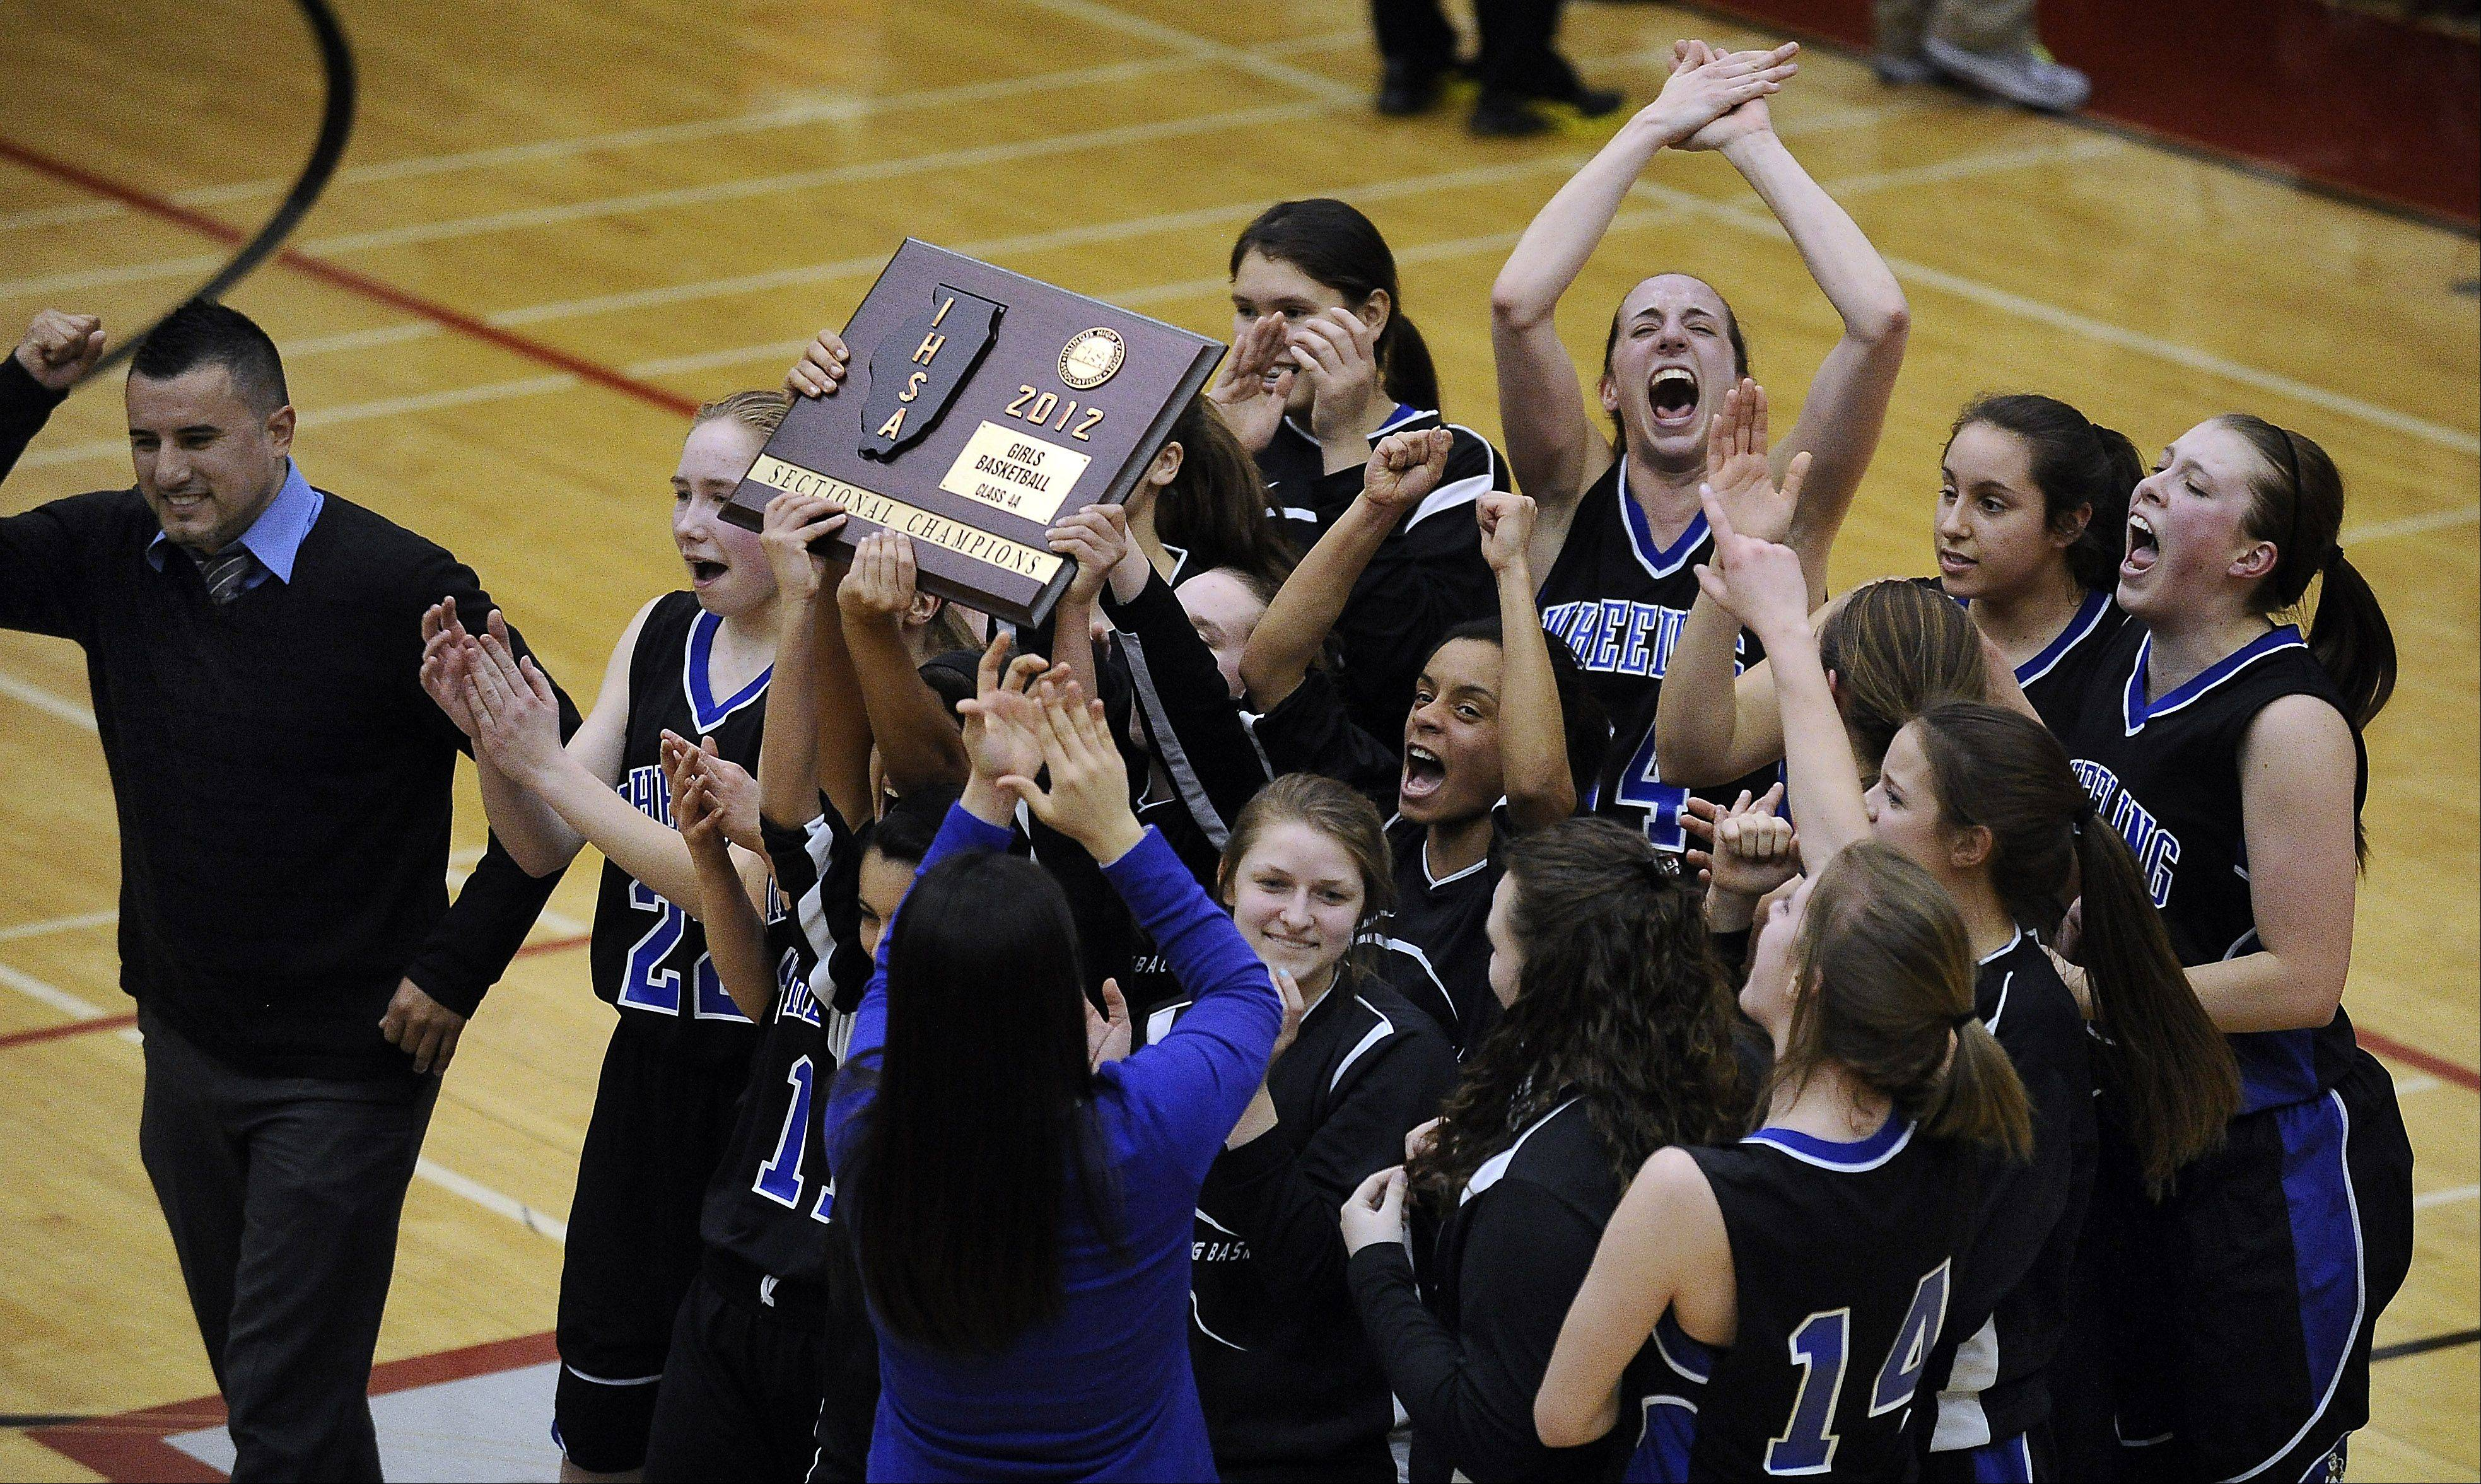 Wheeling celebrates its girls basketball Class 4A sectional championship Thursday at Palatine. The Wildcats play in Monday's 7:30 p.m. Stevenson supersectional against Loyola.